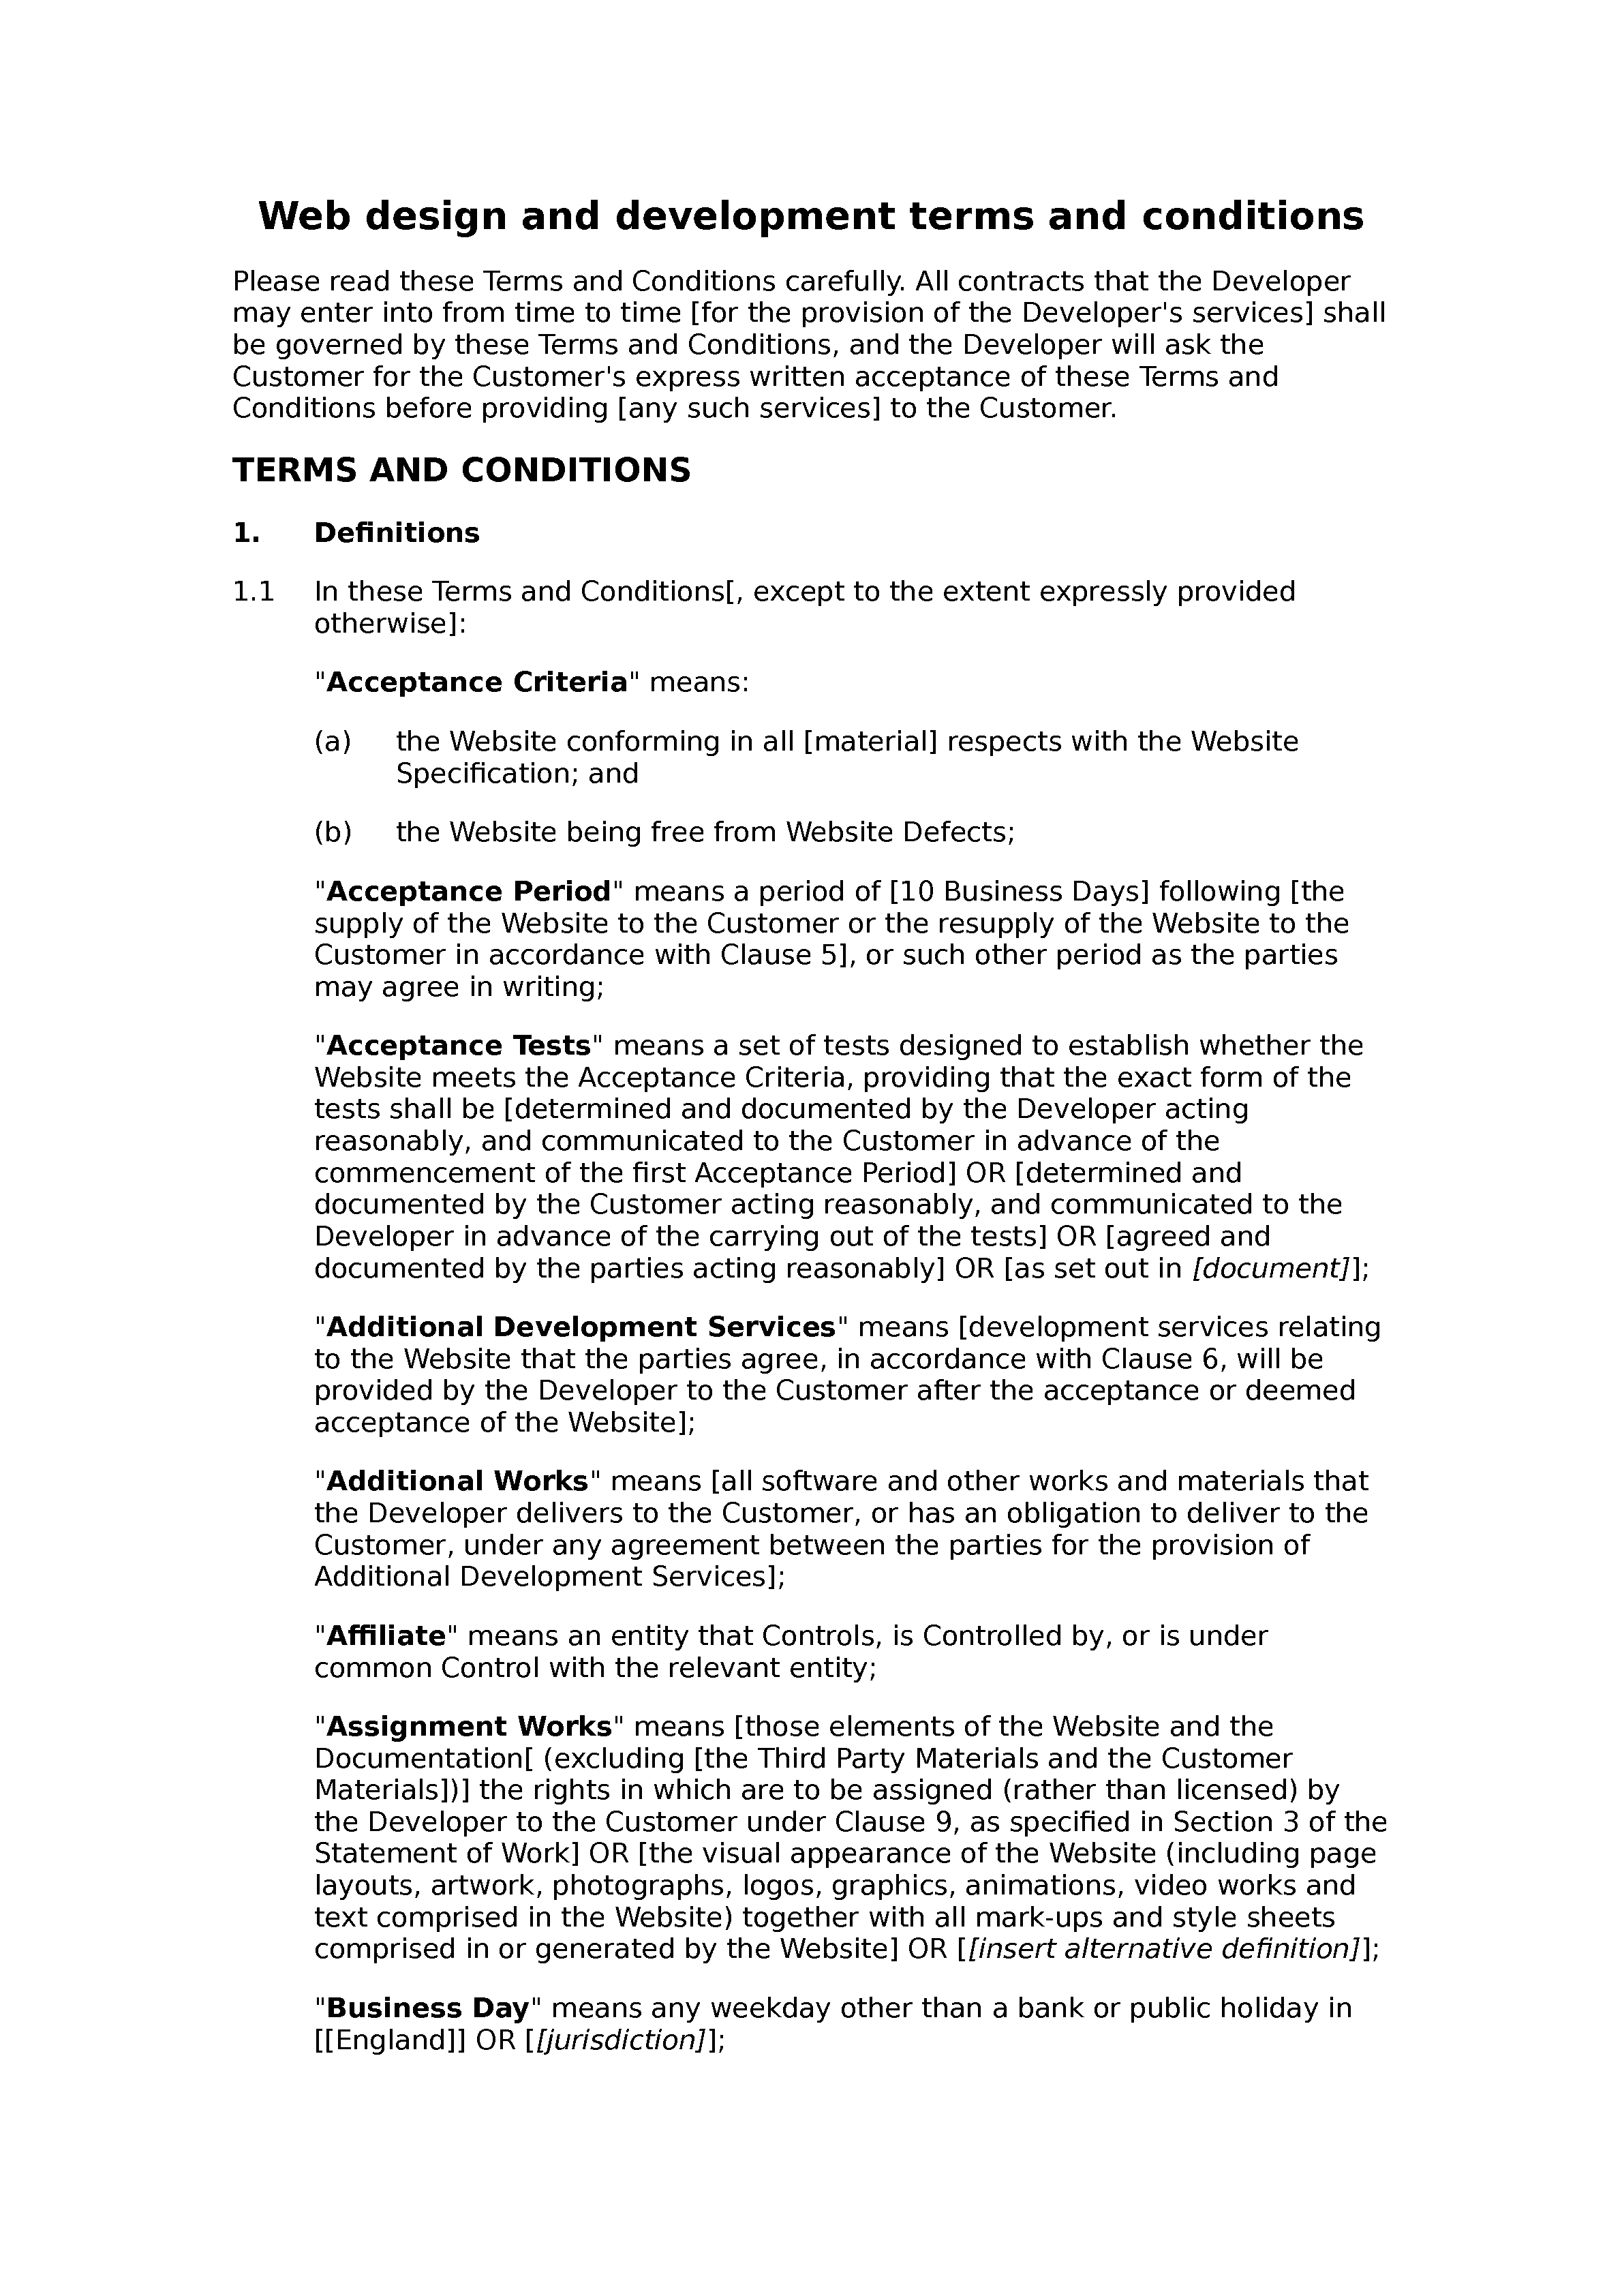 Web design and development terms and conditions (premium) document preview